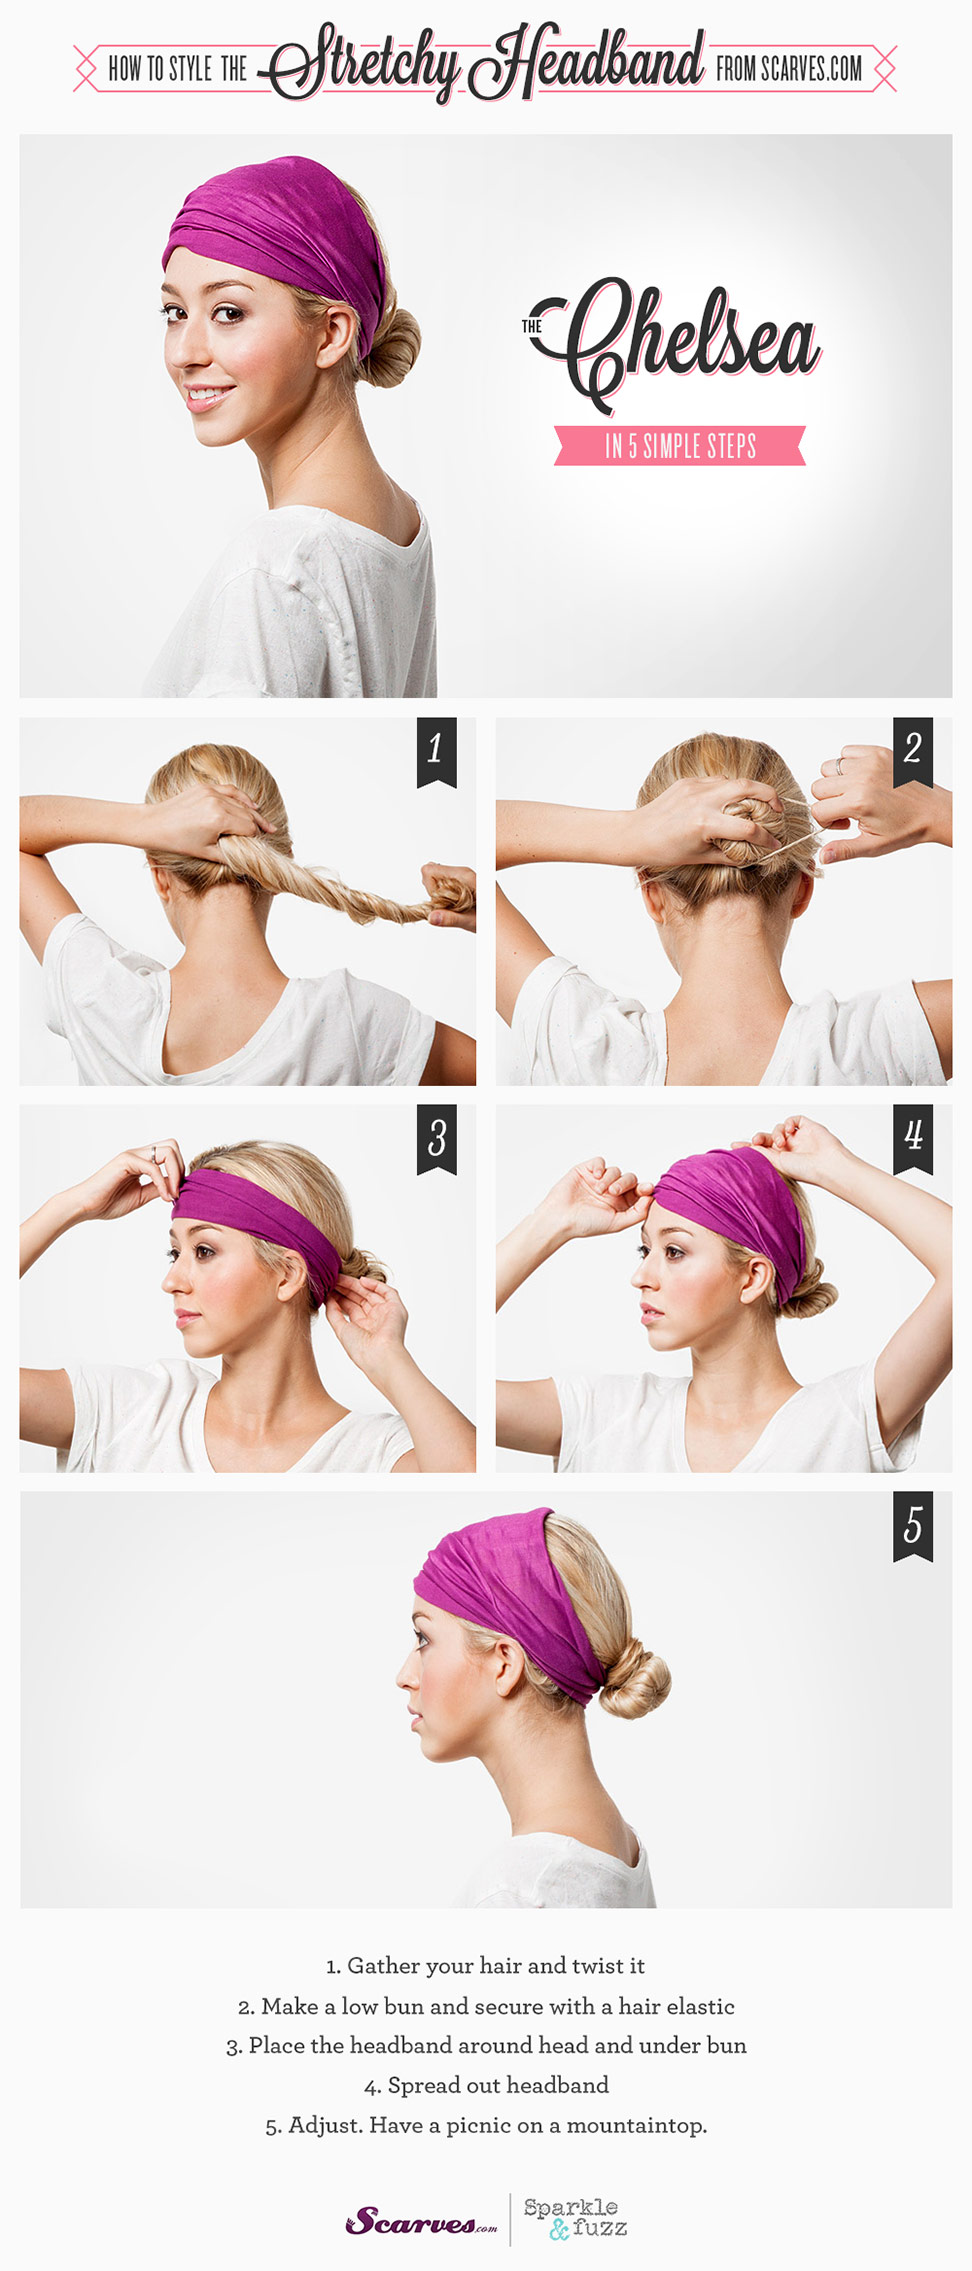 How to Wear Headbands | The Chelsea | Scarves.com